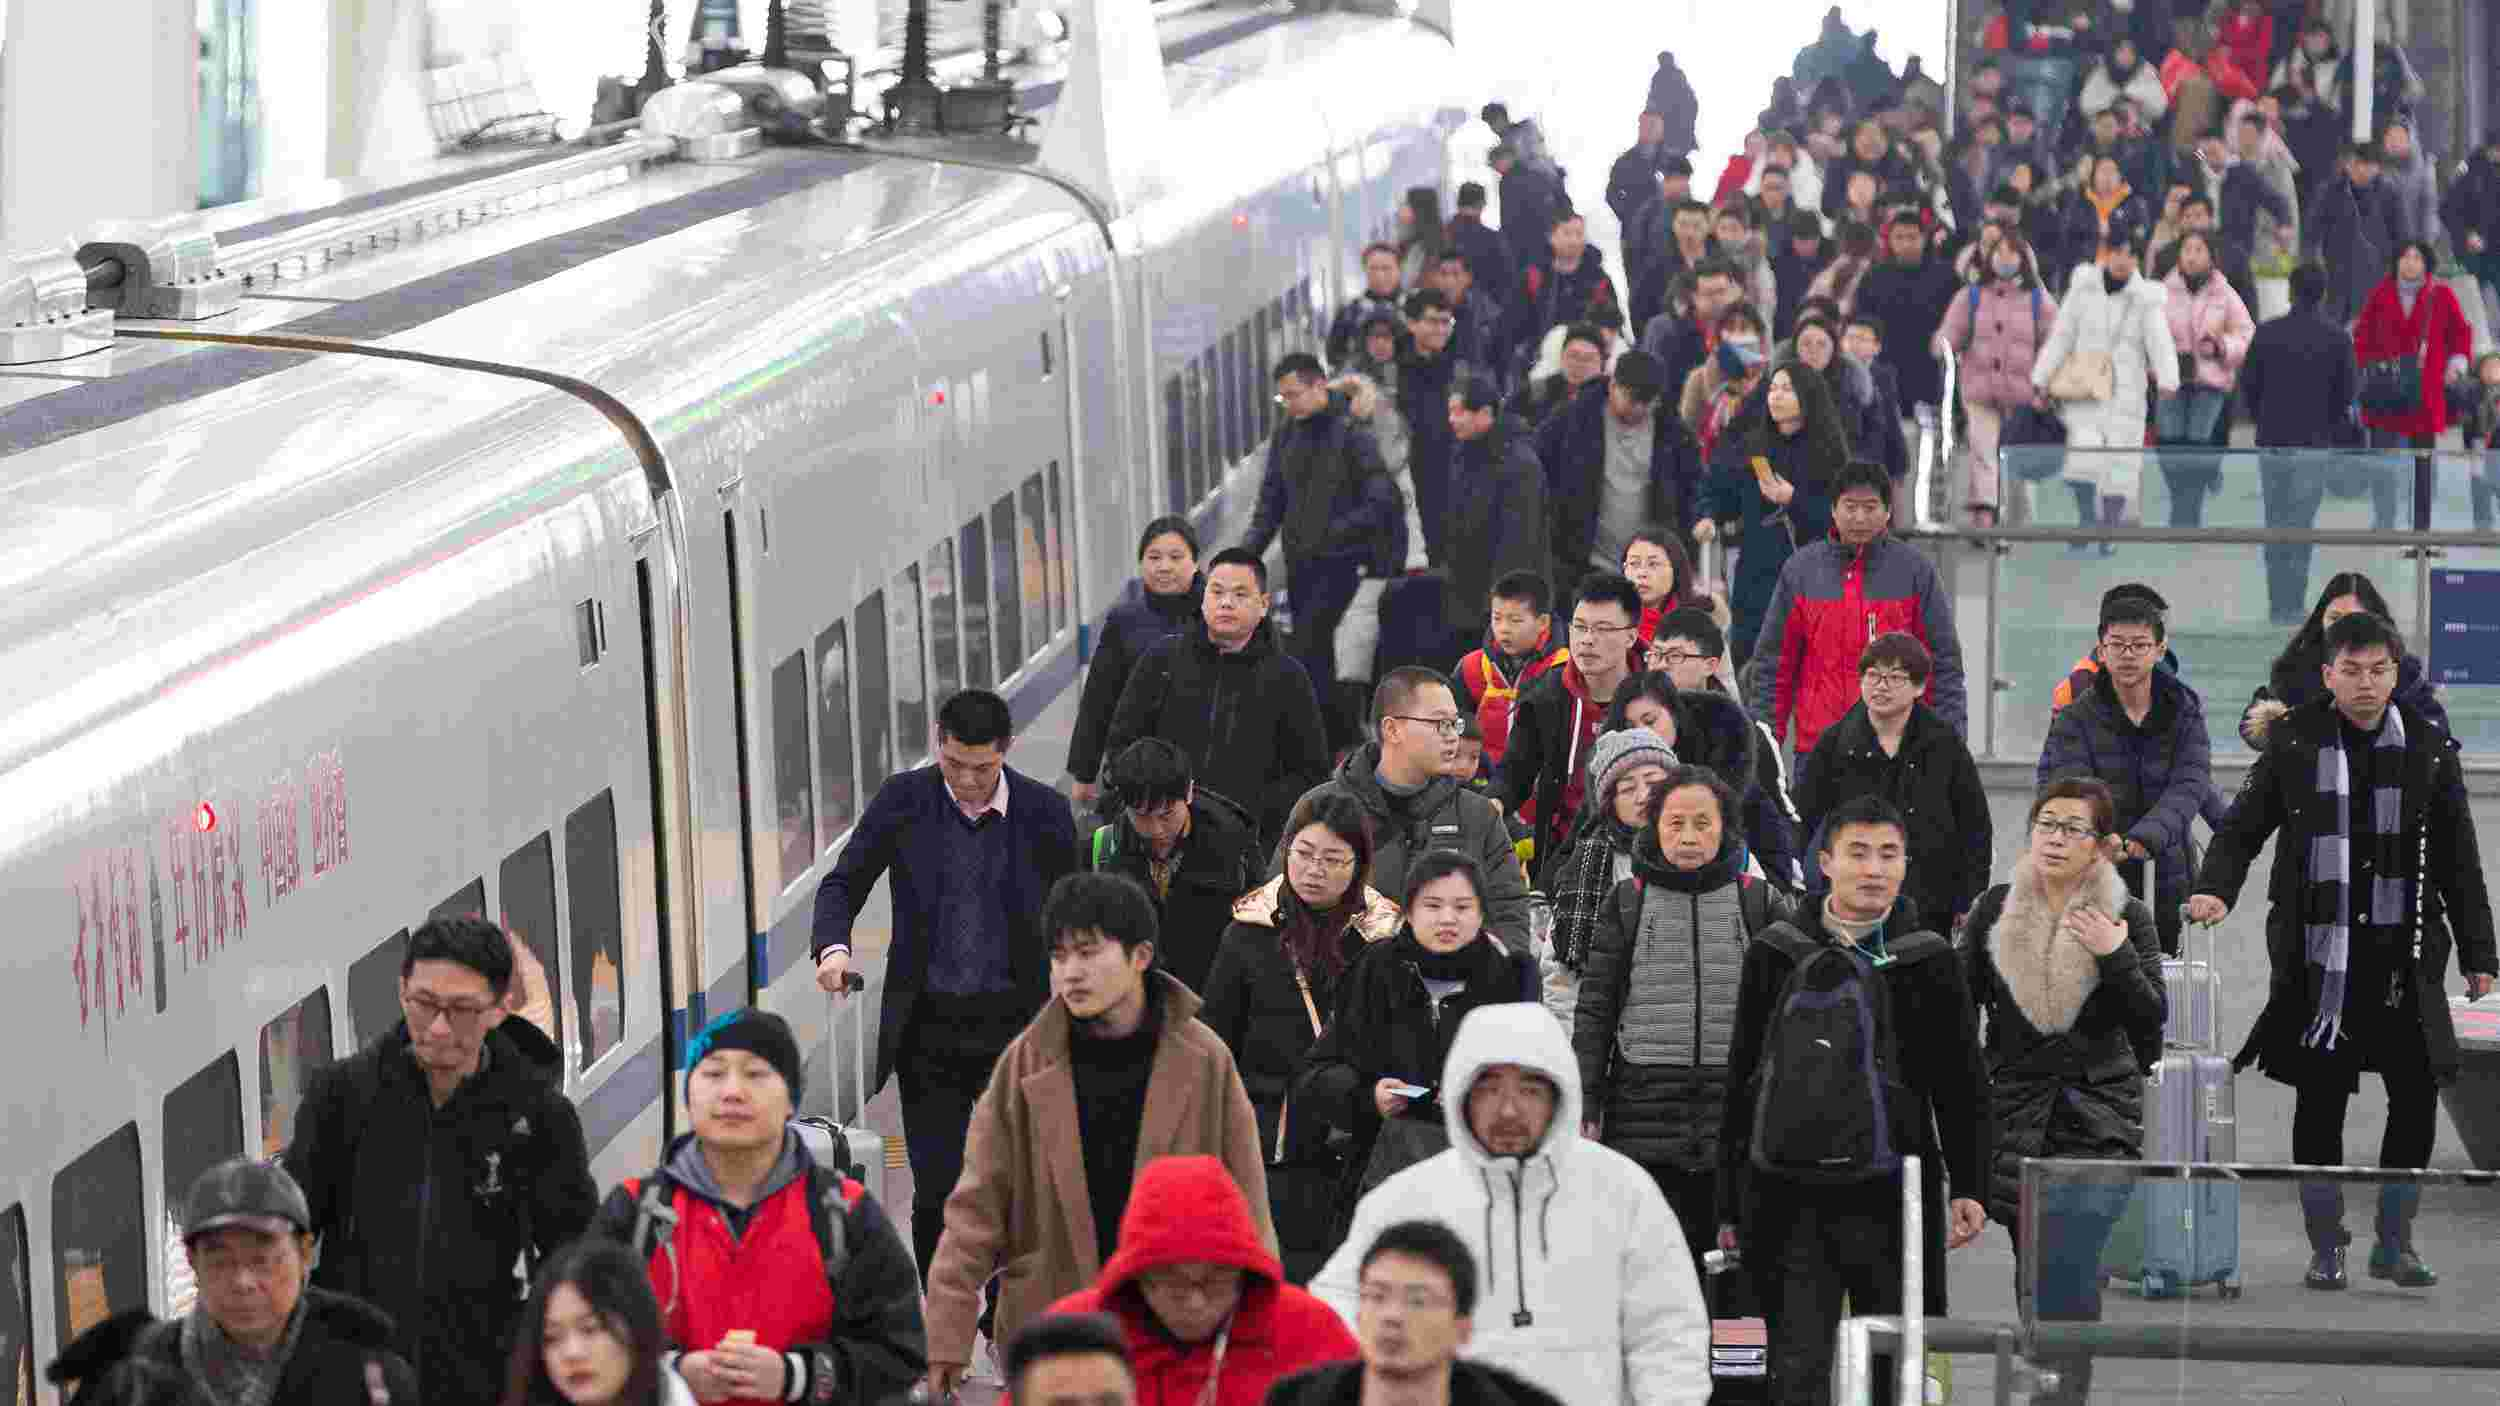 Railway trips exceed 100 mln since Spring Festival travel rush